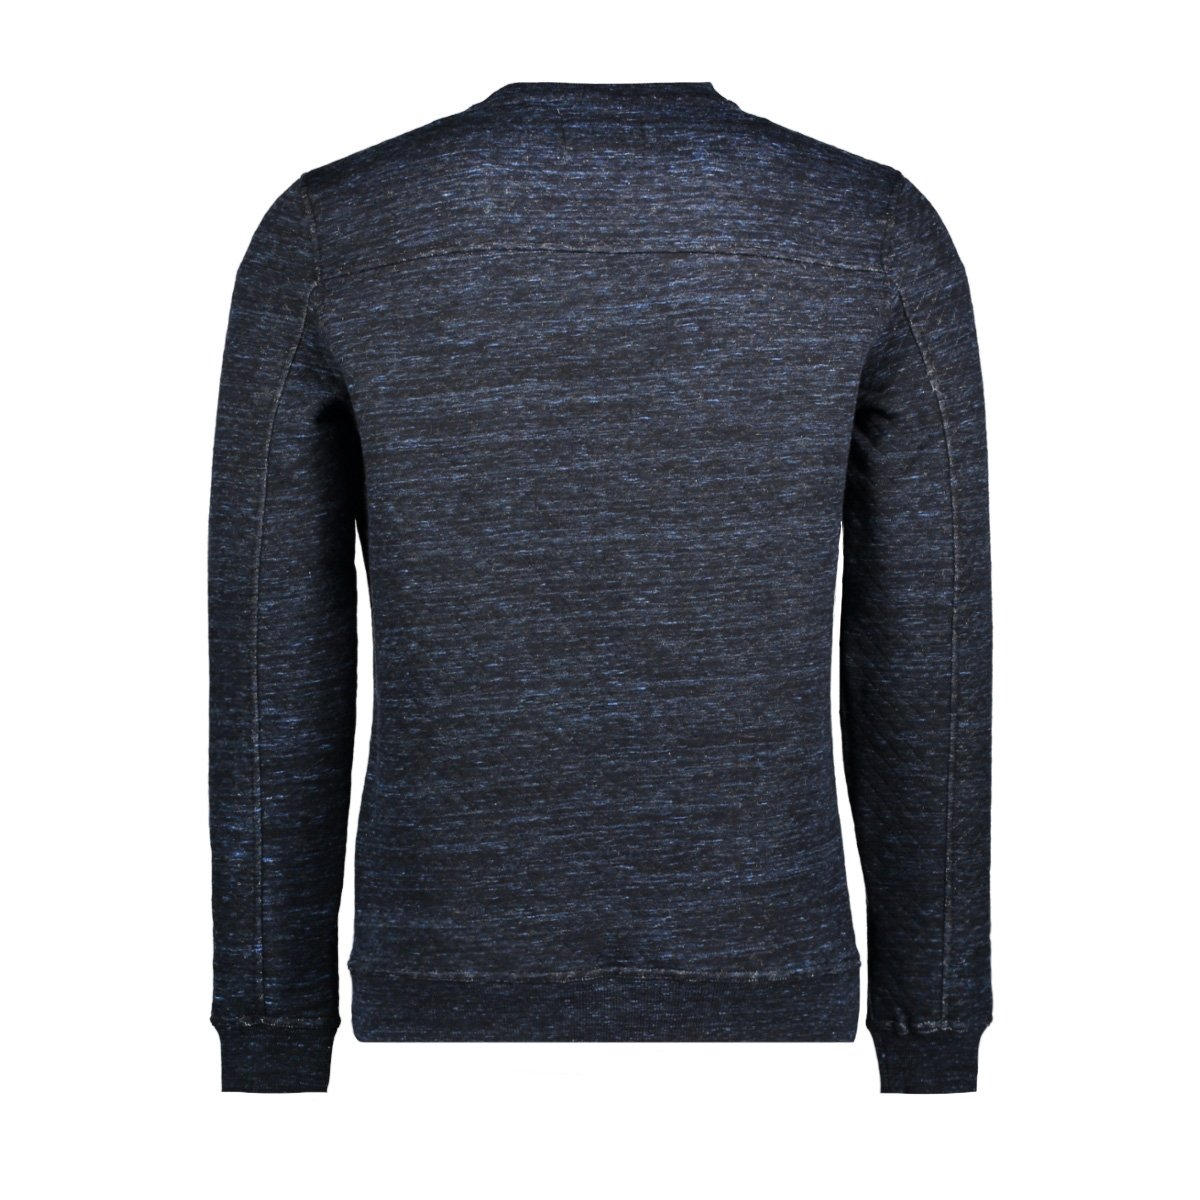 84101112 no-excess sweater 037 navy